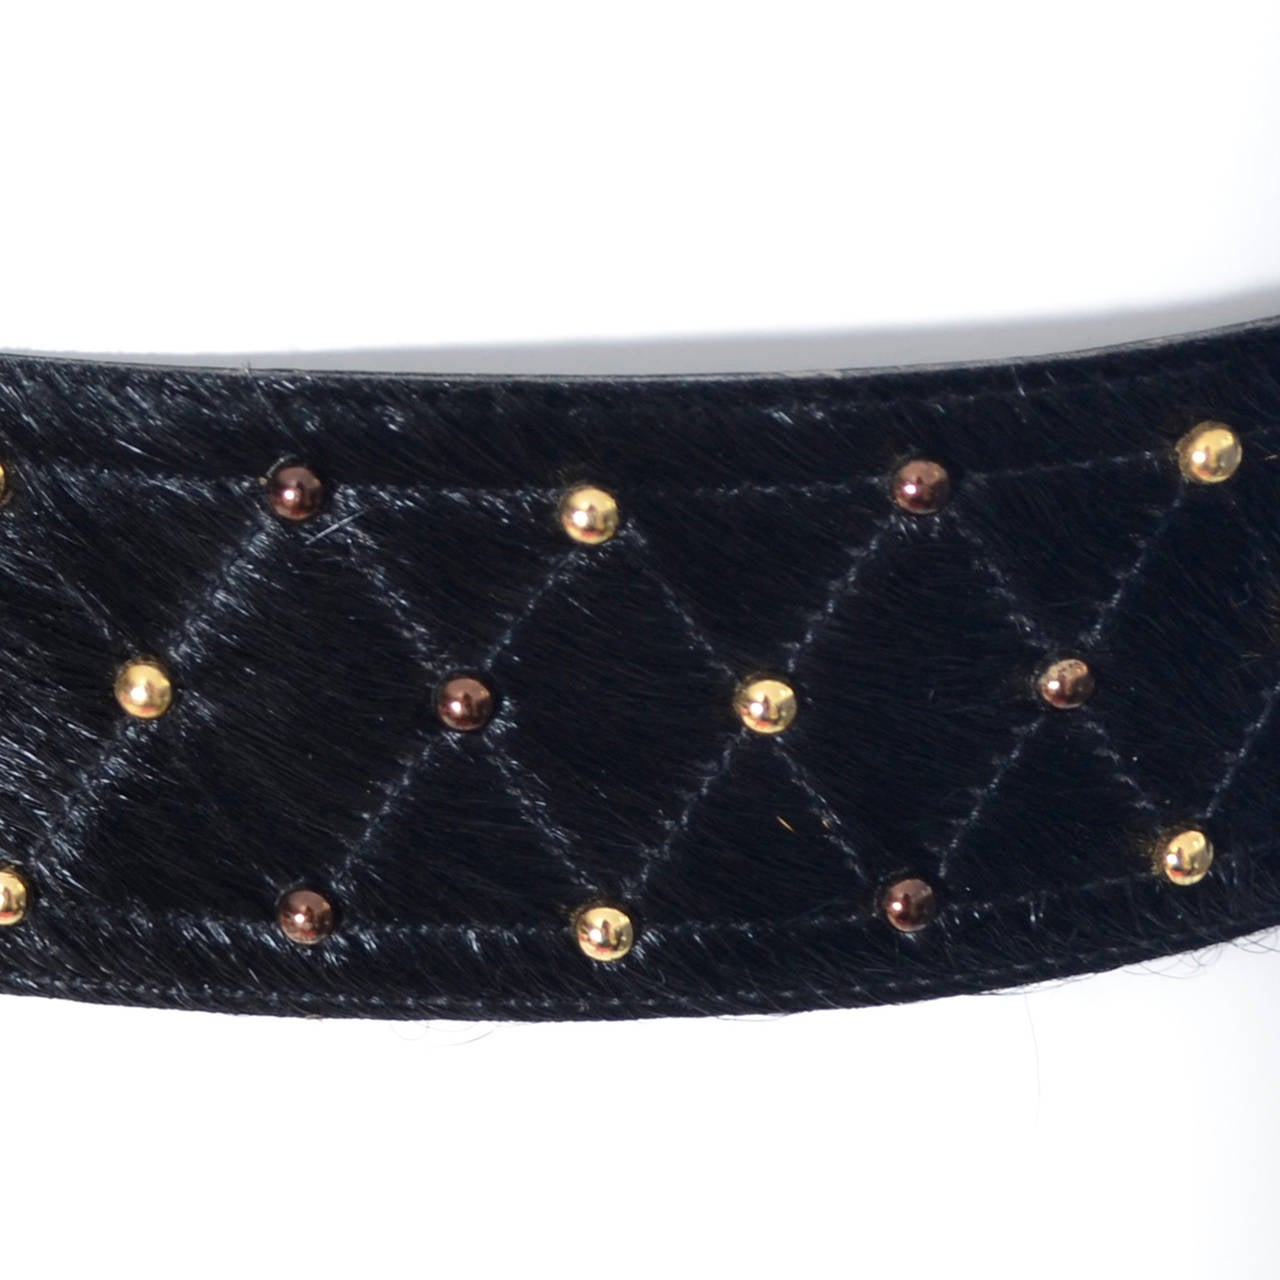 YSL Vintage Belt Yves Saint Laurent Studded Fur Ladies Belt Medium 3